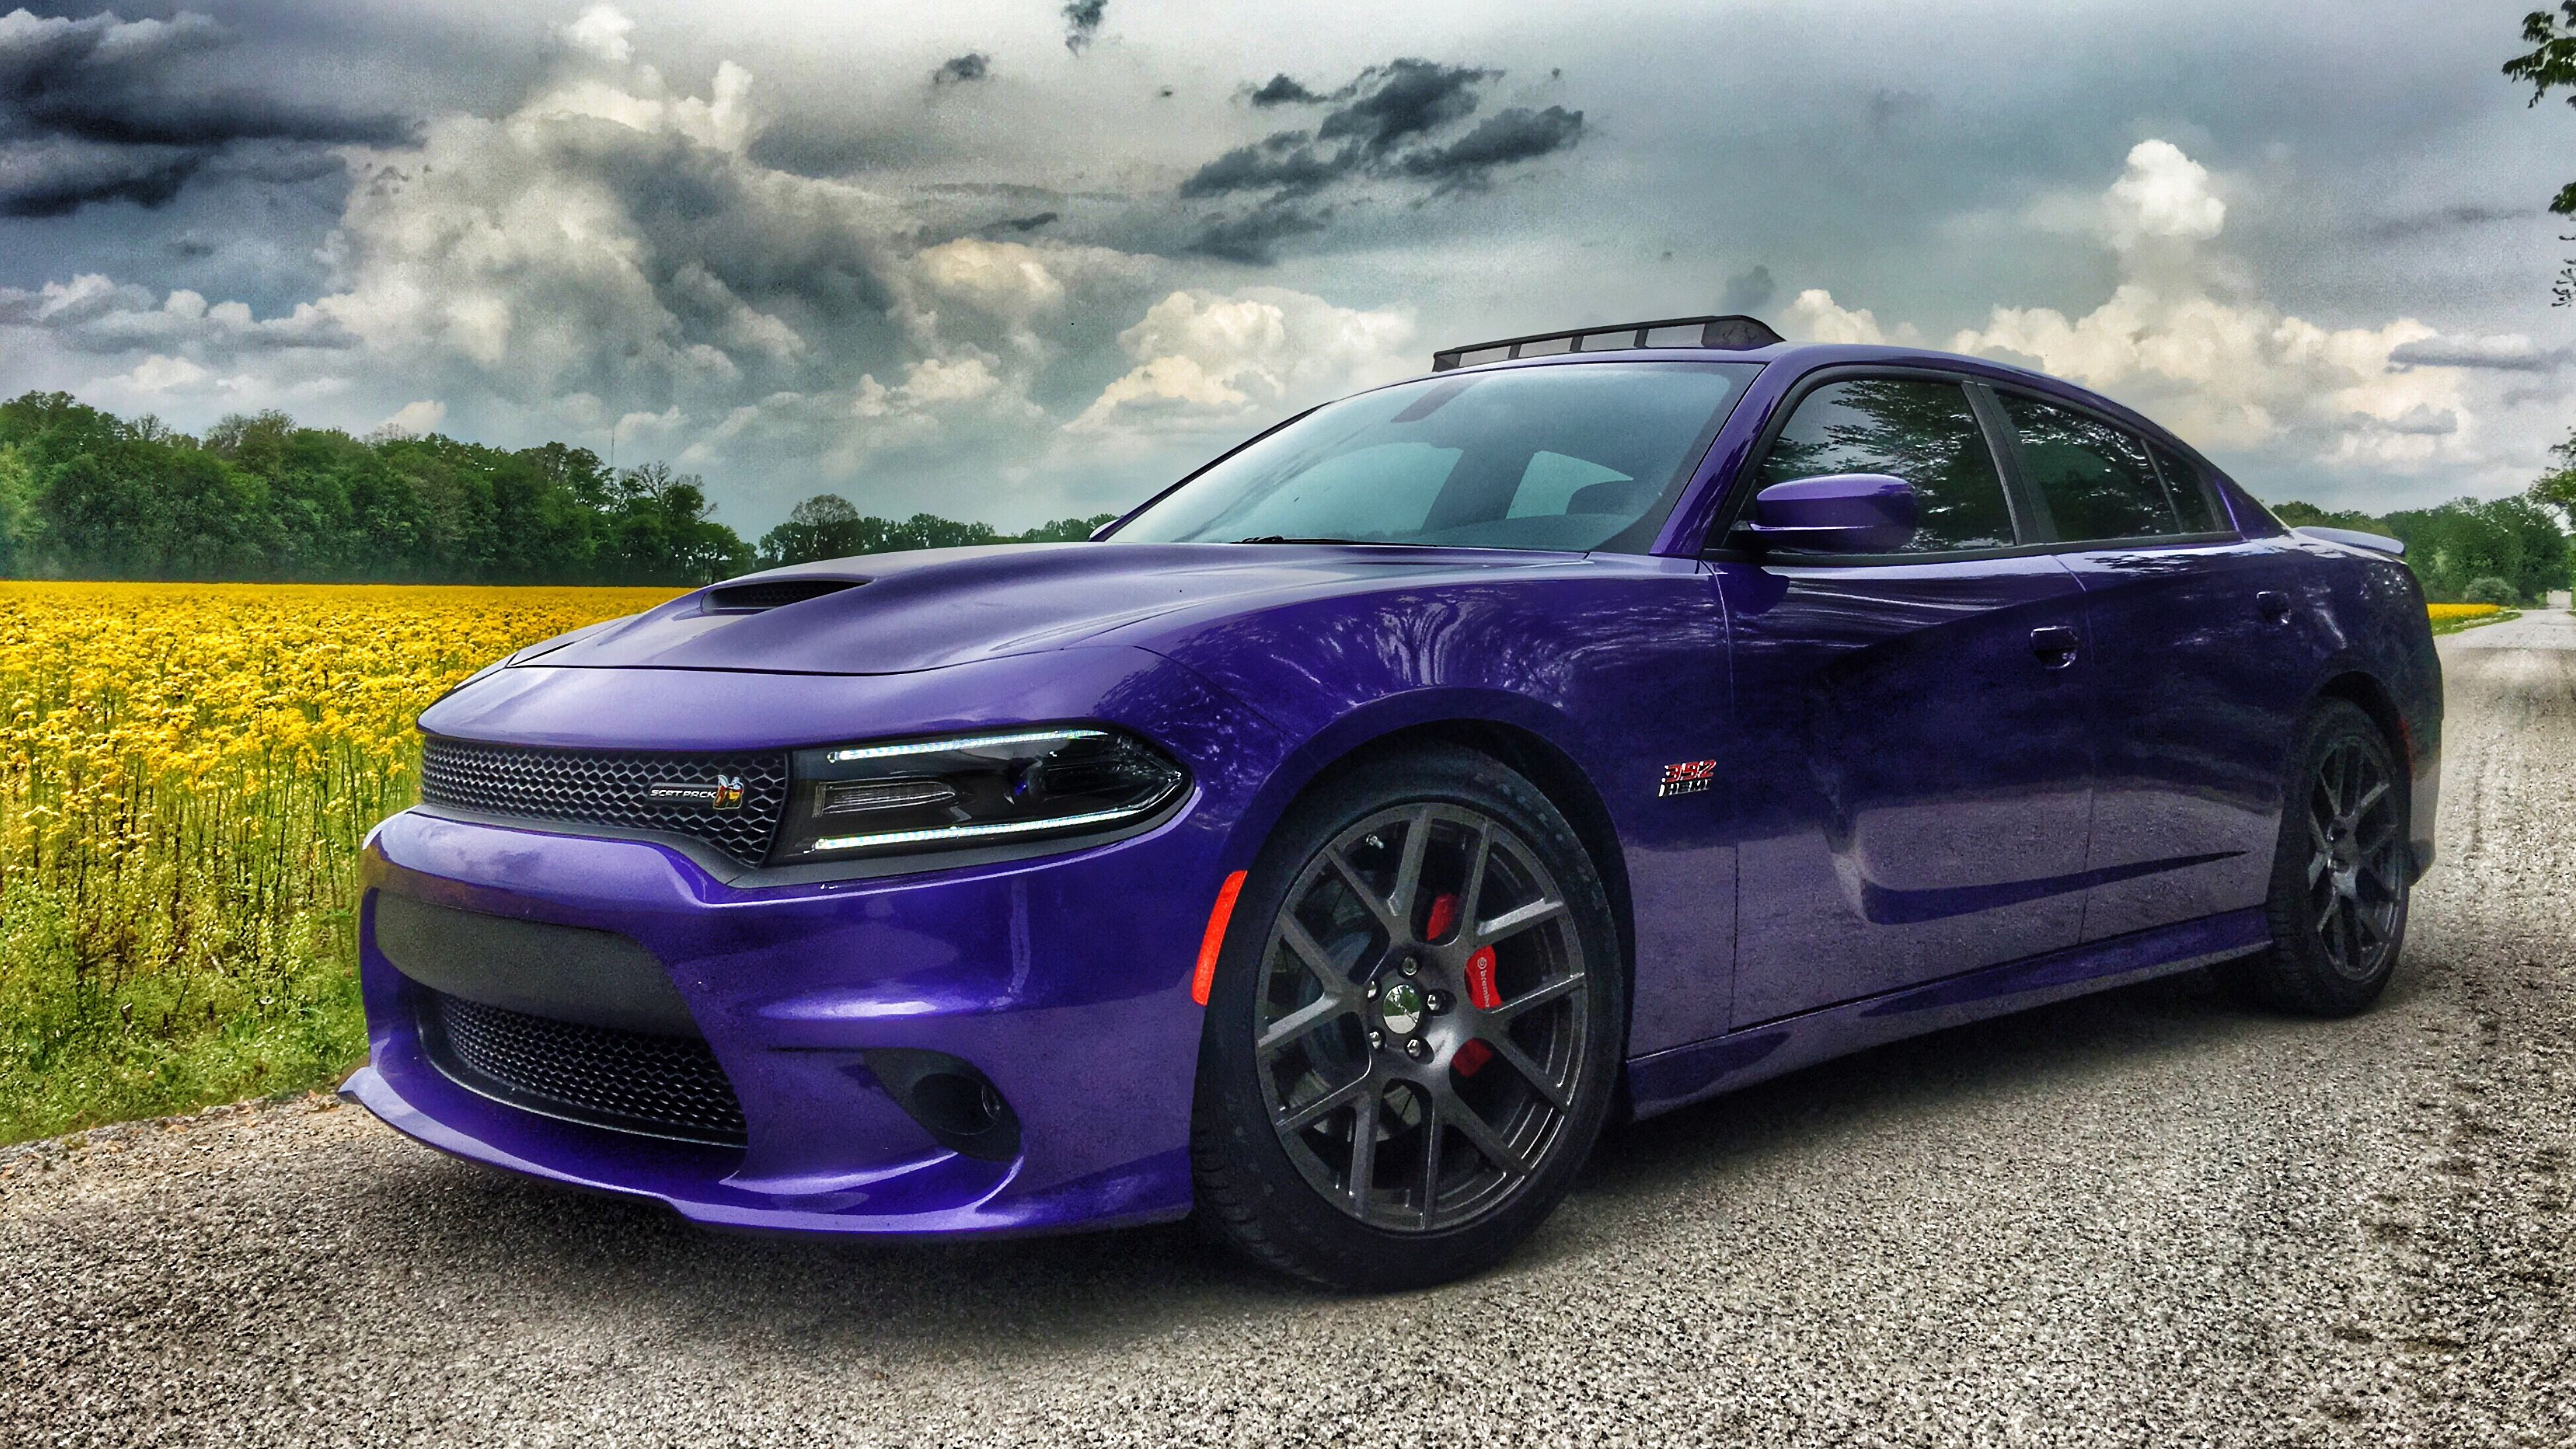 Pin By Sohail Salem On Scat Pack Dodge Charger Charger Srt Dodge Charger Hellcat